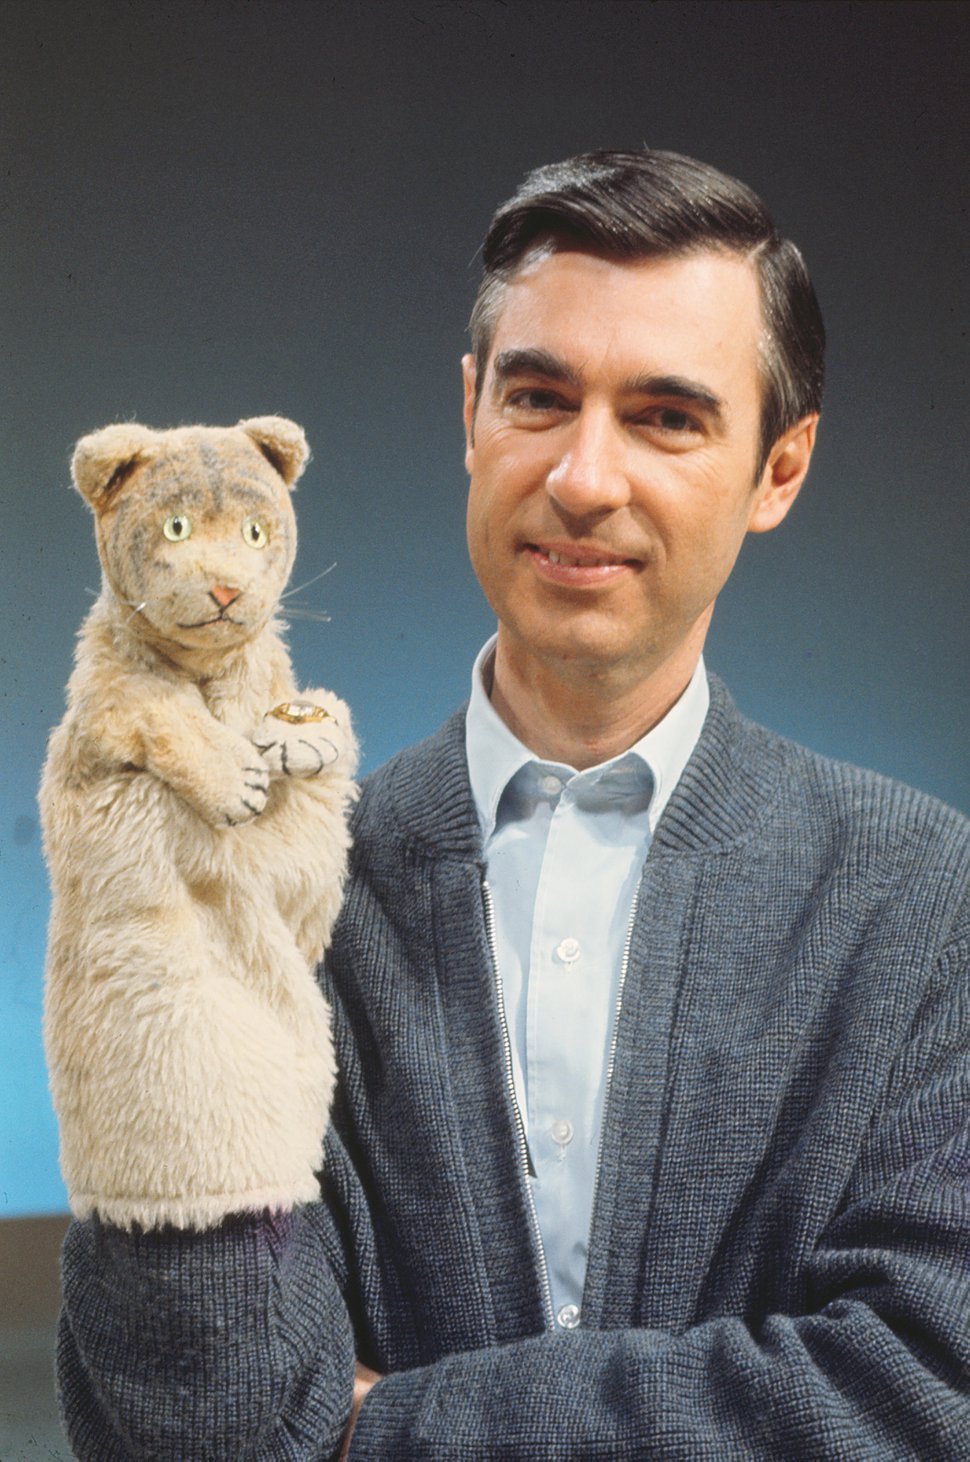 (Courtesy Focus Features) Fred Rogers with Daniel Tiger from his show